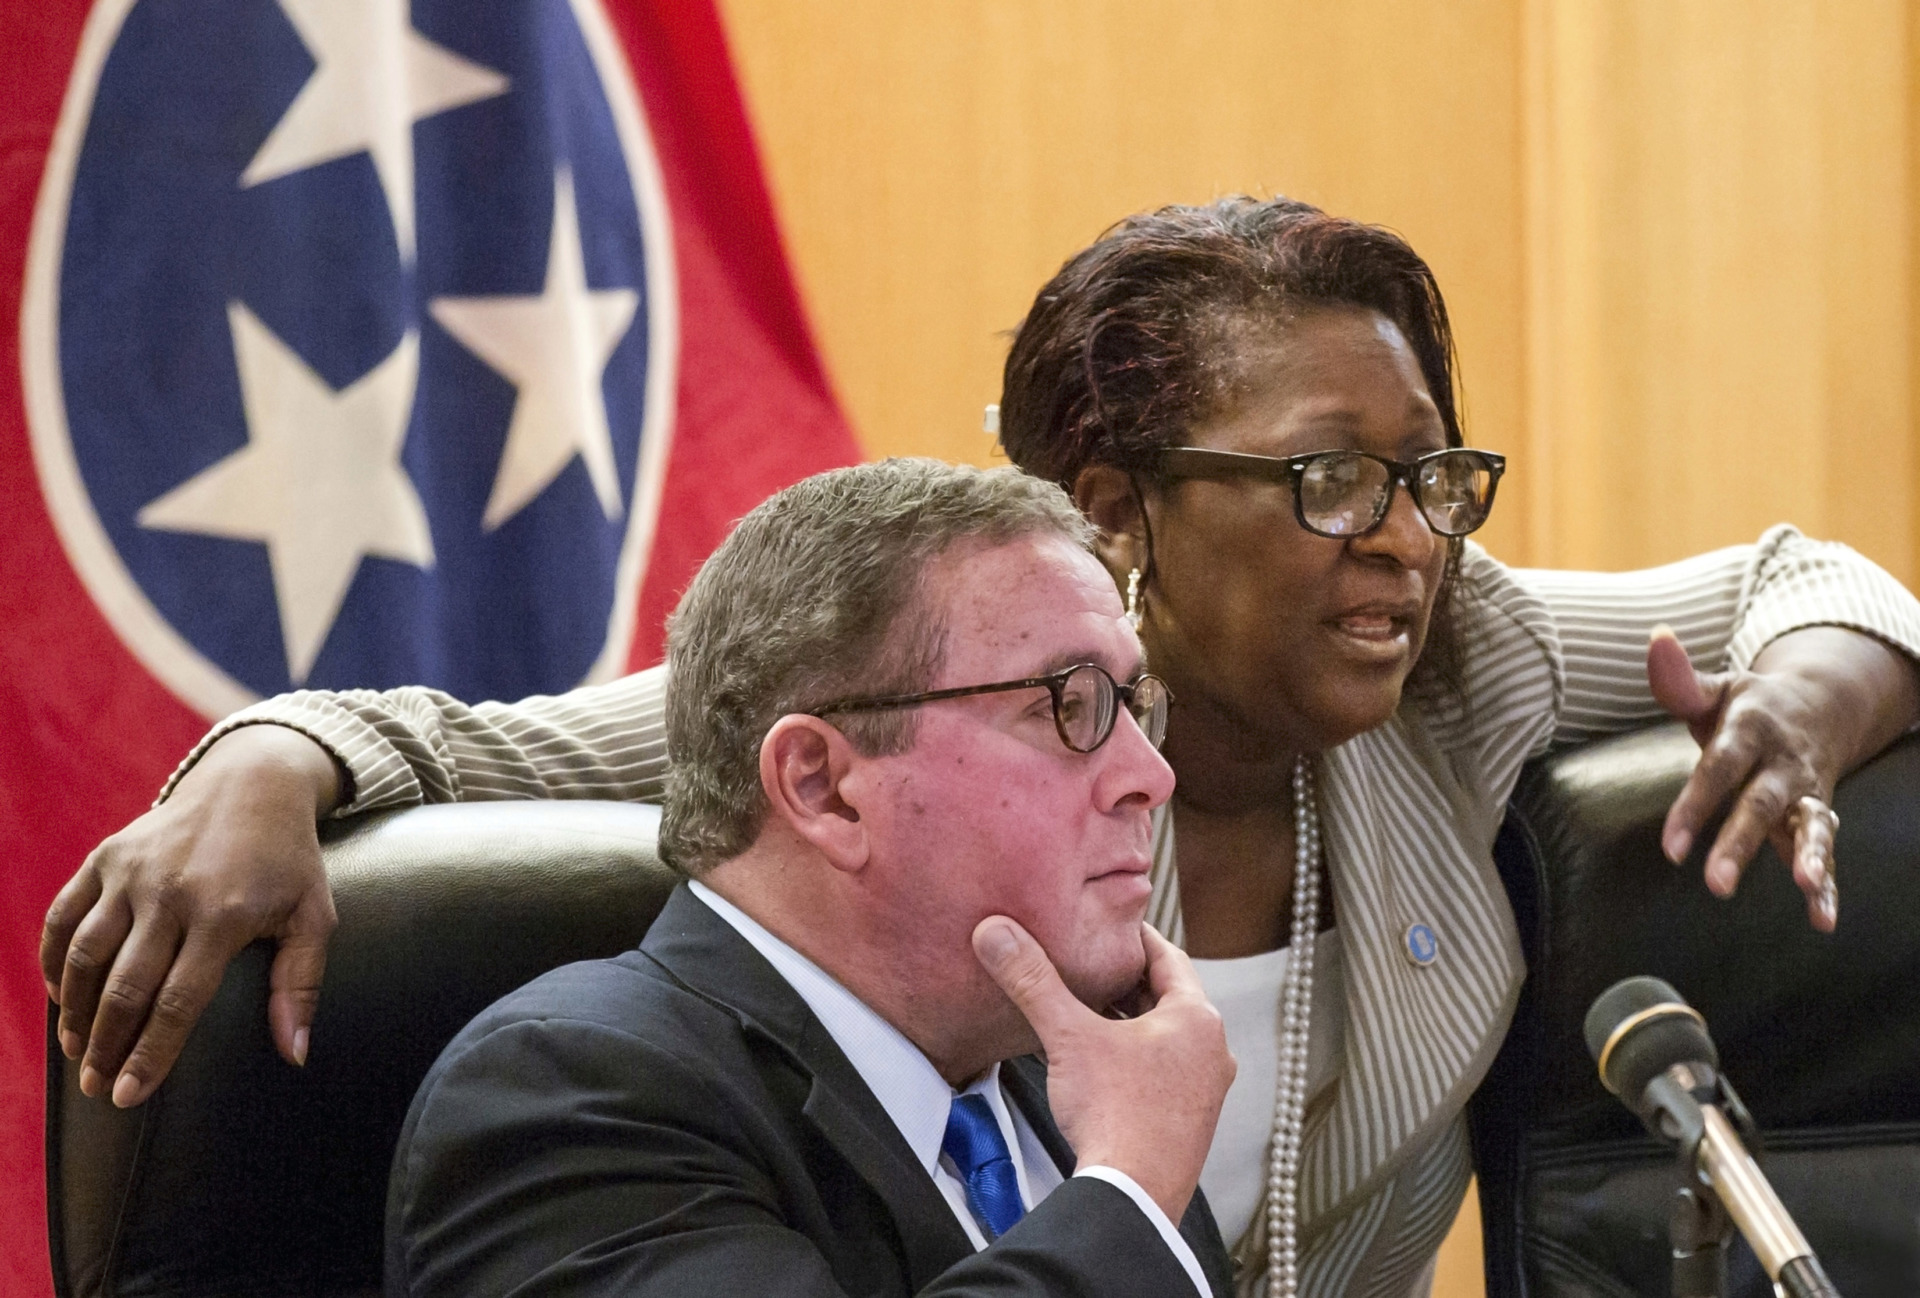 <strong>State Rep. Karen Camper, D-Memphis (right) confers with then-Rep. Gerald McCormick, R-Chattanooga, before a House Finance Subcommittee in Nashville in 2017. Camper is criticizing a bill that cuts the authority of police oversight boards, saying it is an effort by Republican state lawmakers to control local government.</strong> (Erik Schelzig/AP file photo)